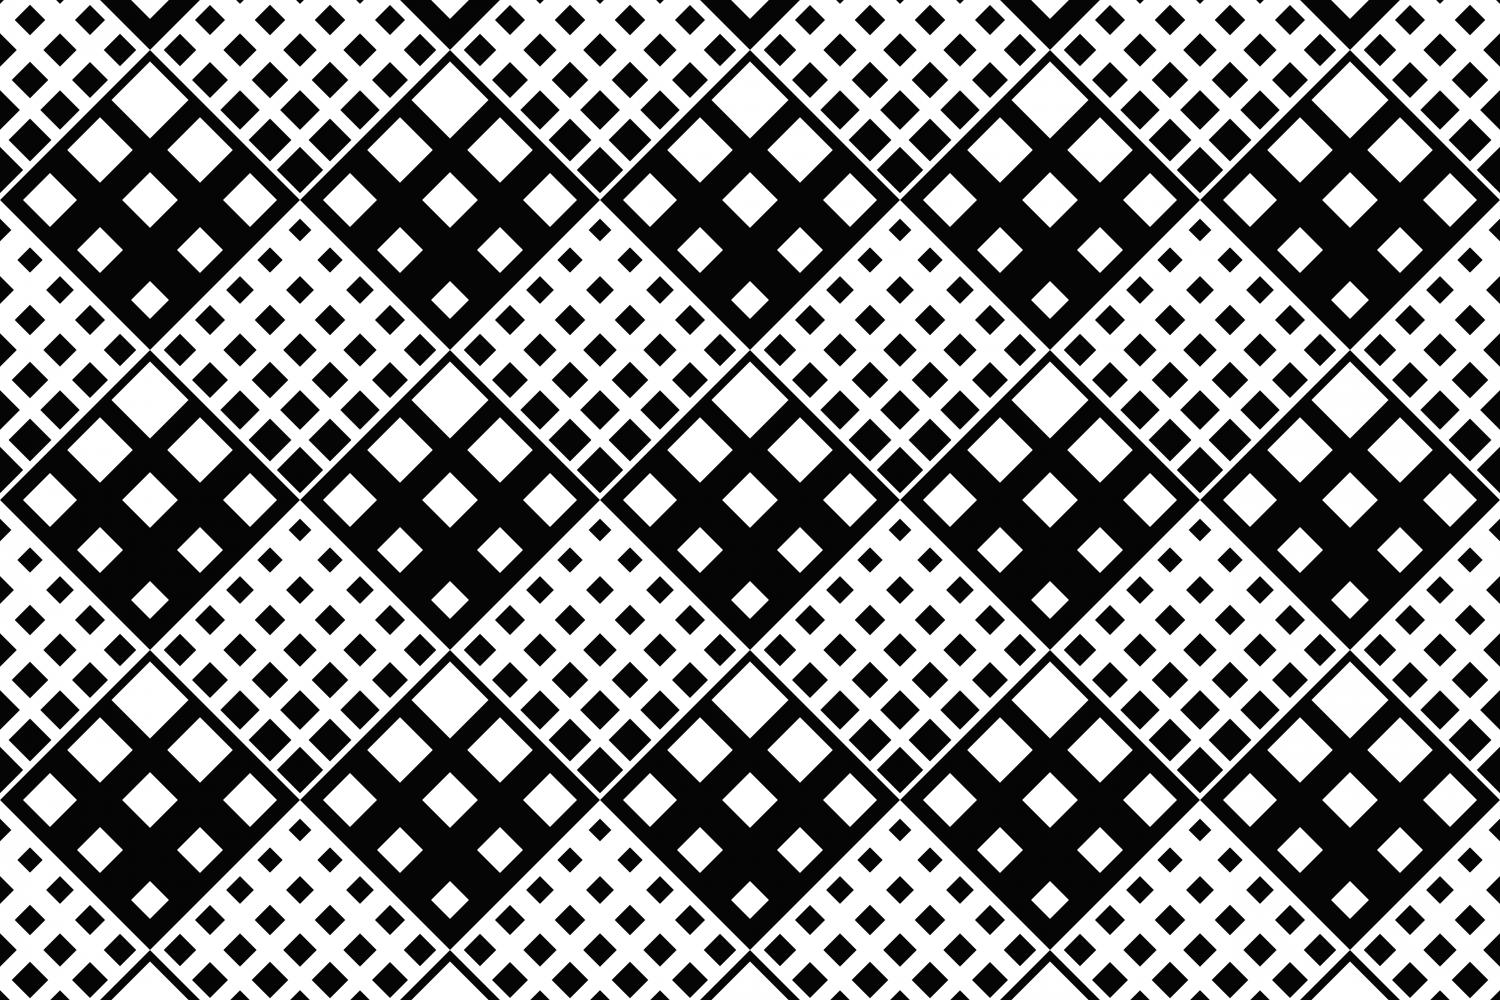 24 Seamless Square Patterns example image 25